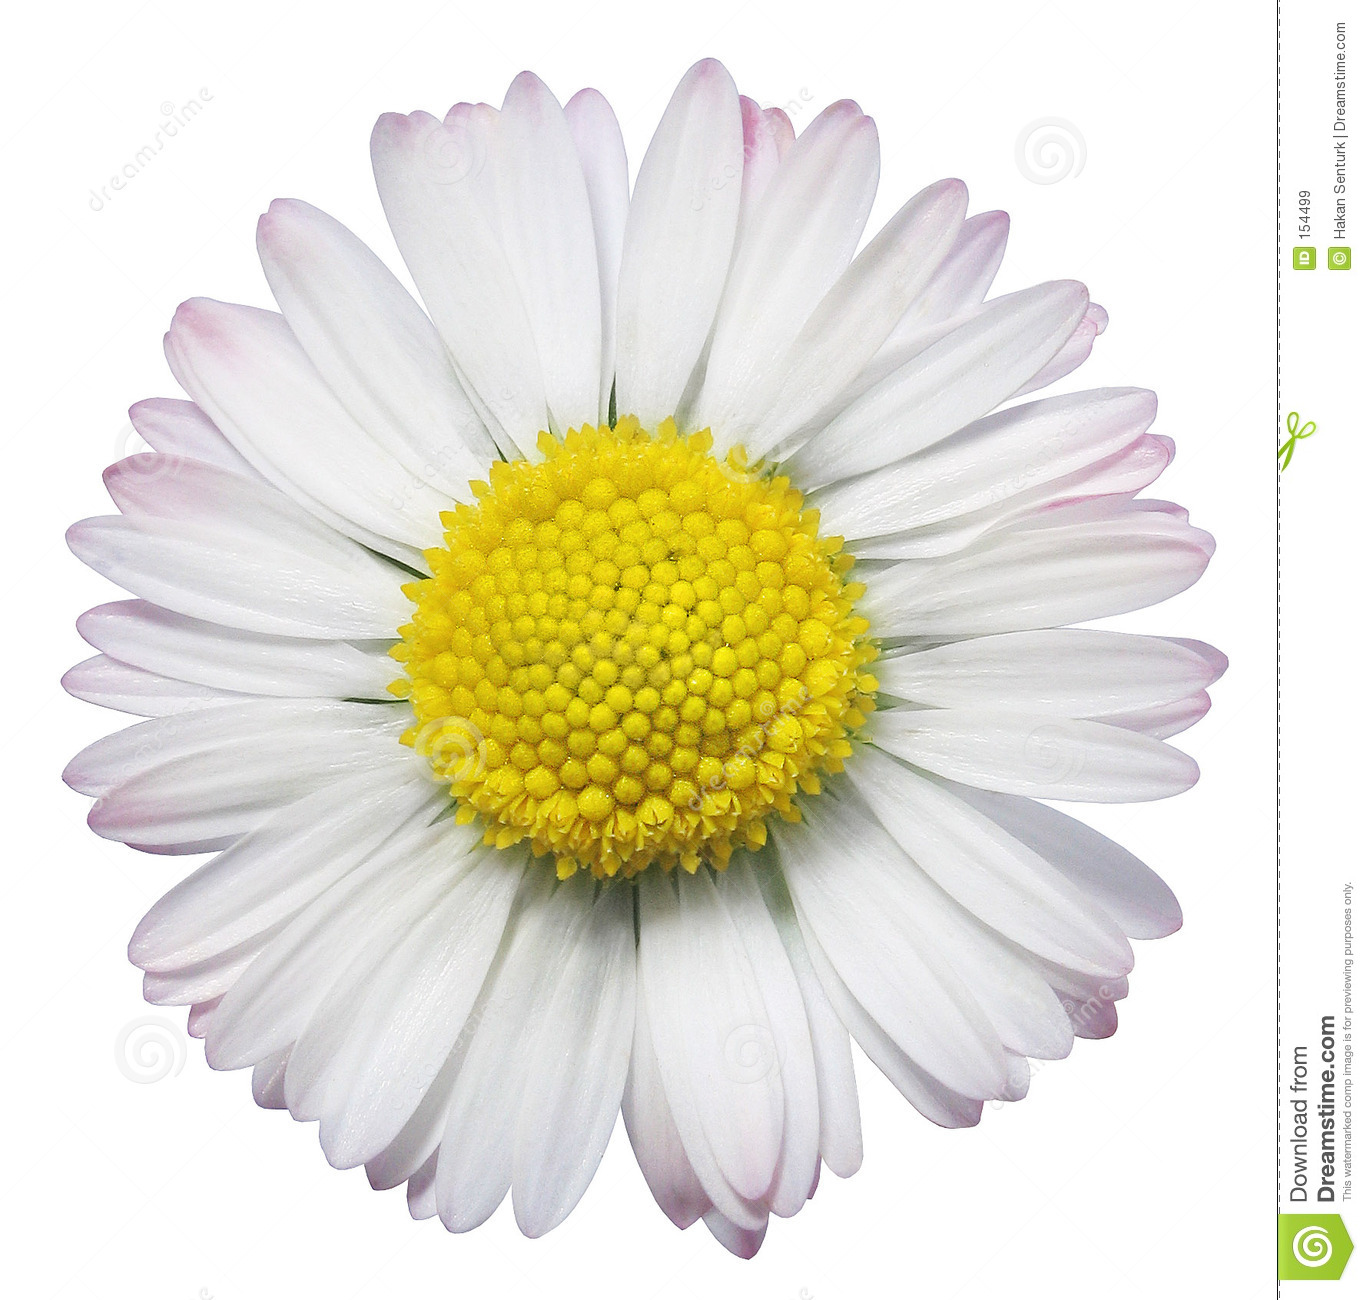 Common daisy flower stock image image of daisy petals 154499 common daisy flower izmirmasajfo Gallery